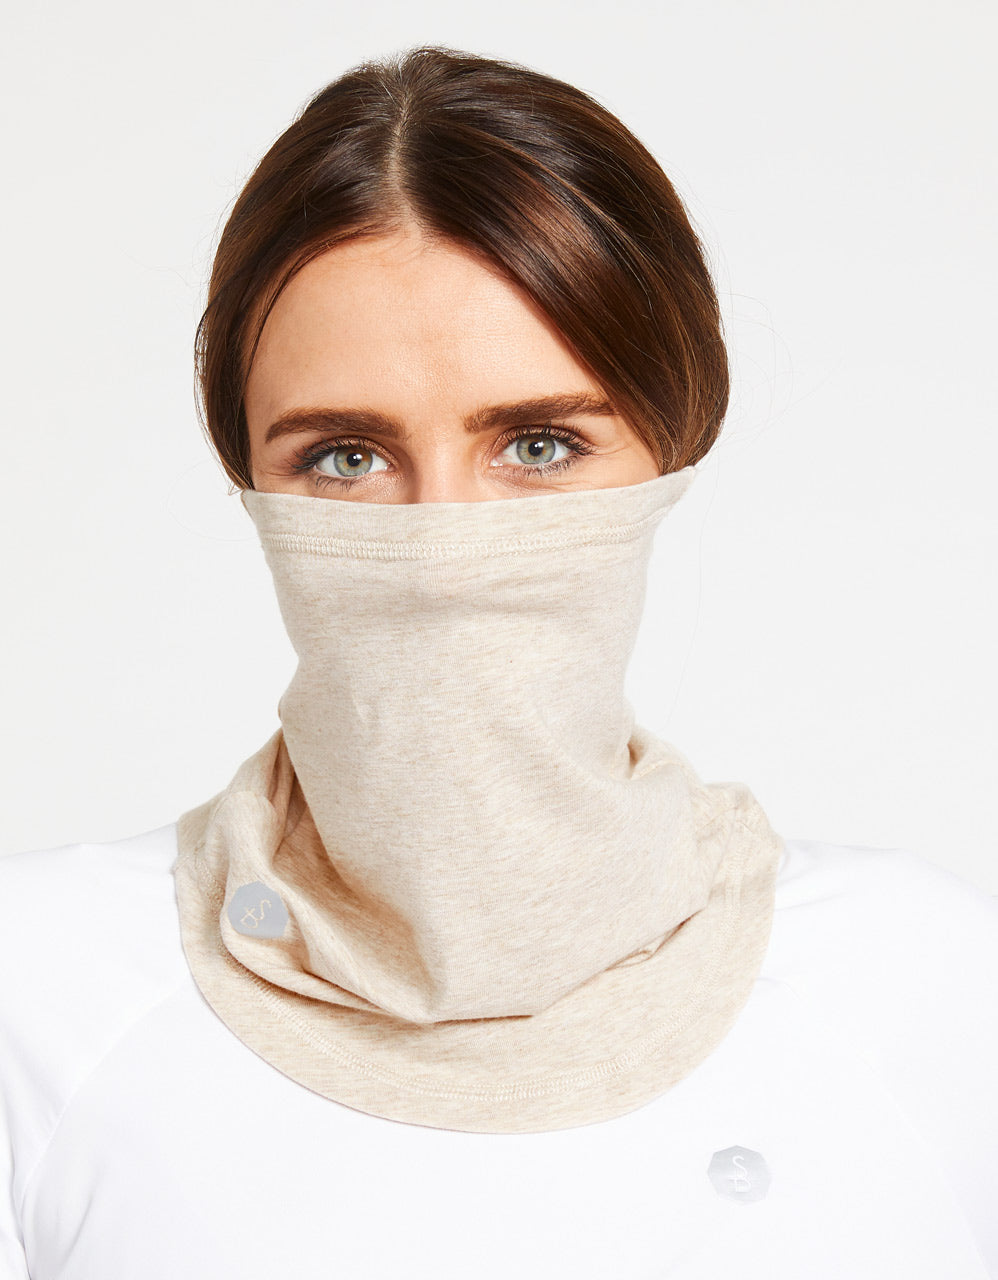 Solbari Sun Protection UPF50+ Curved Face & Neck Gaiter in Oatmeal Sensitive Collection